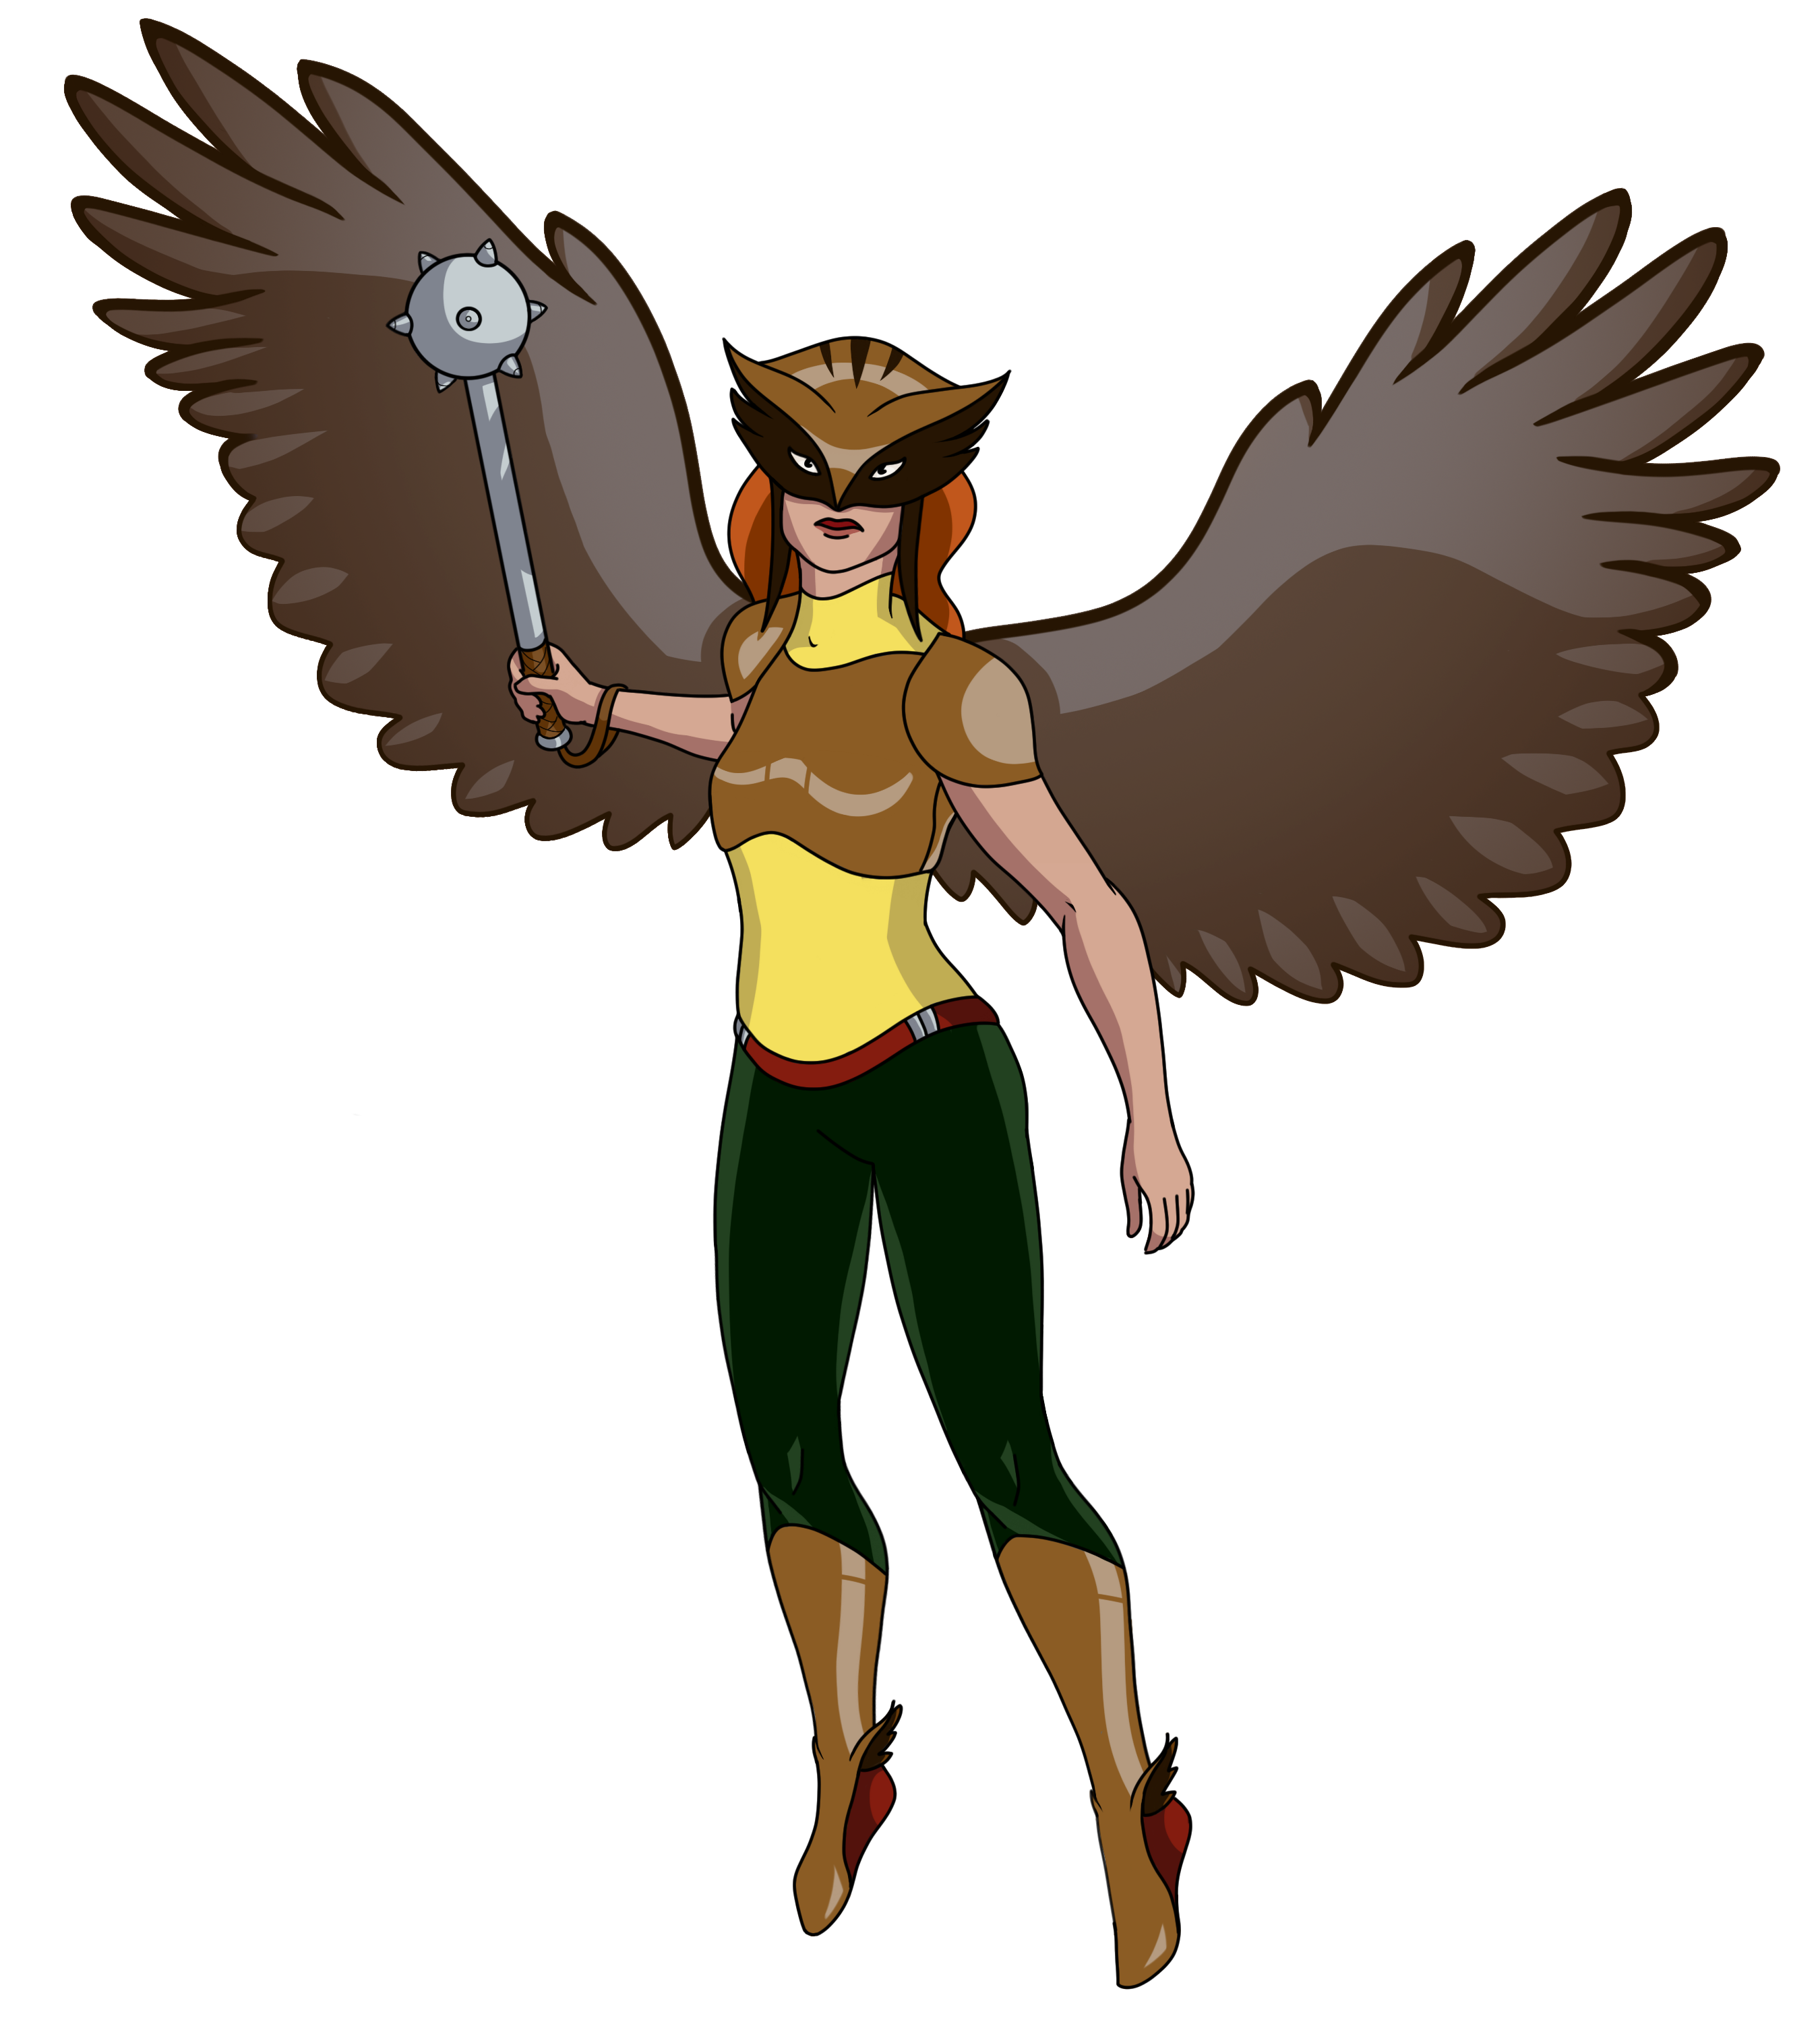 Hawkgirl_finished.png